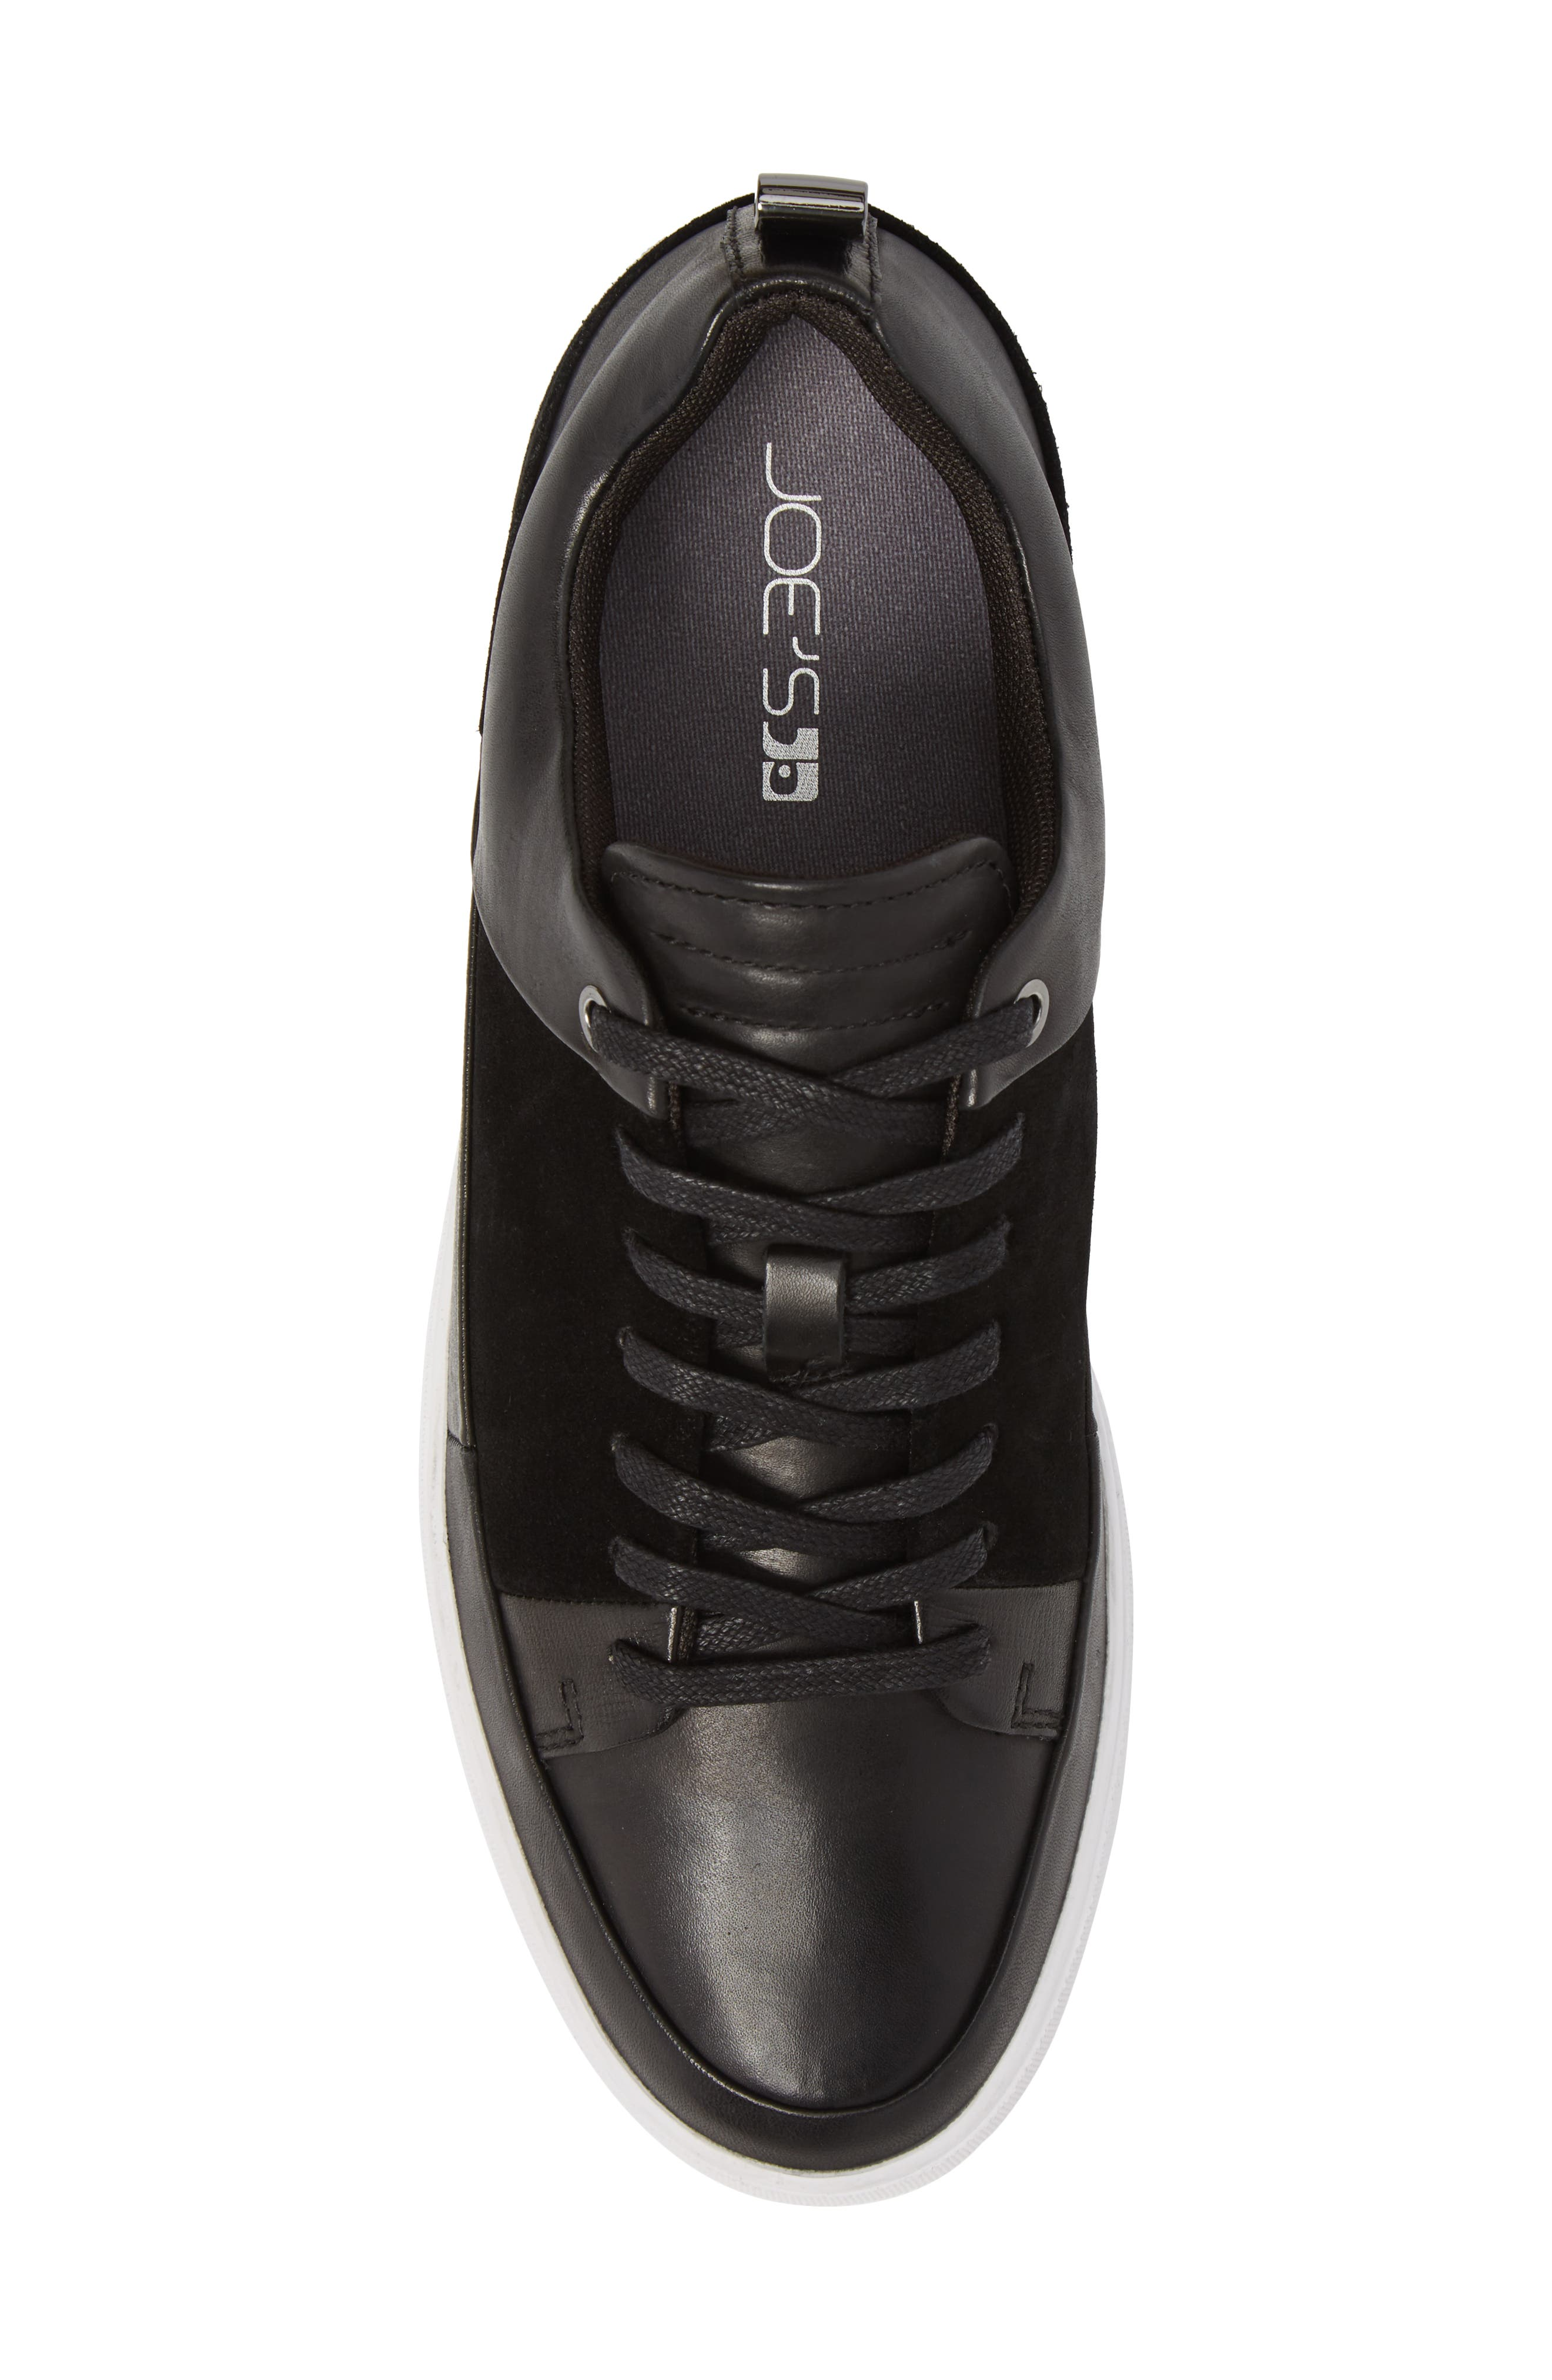 Slick Sneaker,                             Alternate thumbnail 5, color,                             BLACK LEATHER/ SUEDE